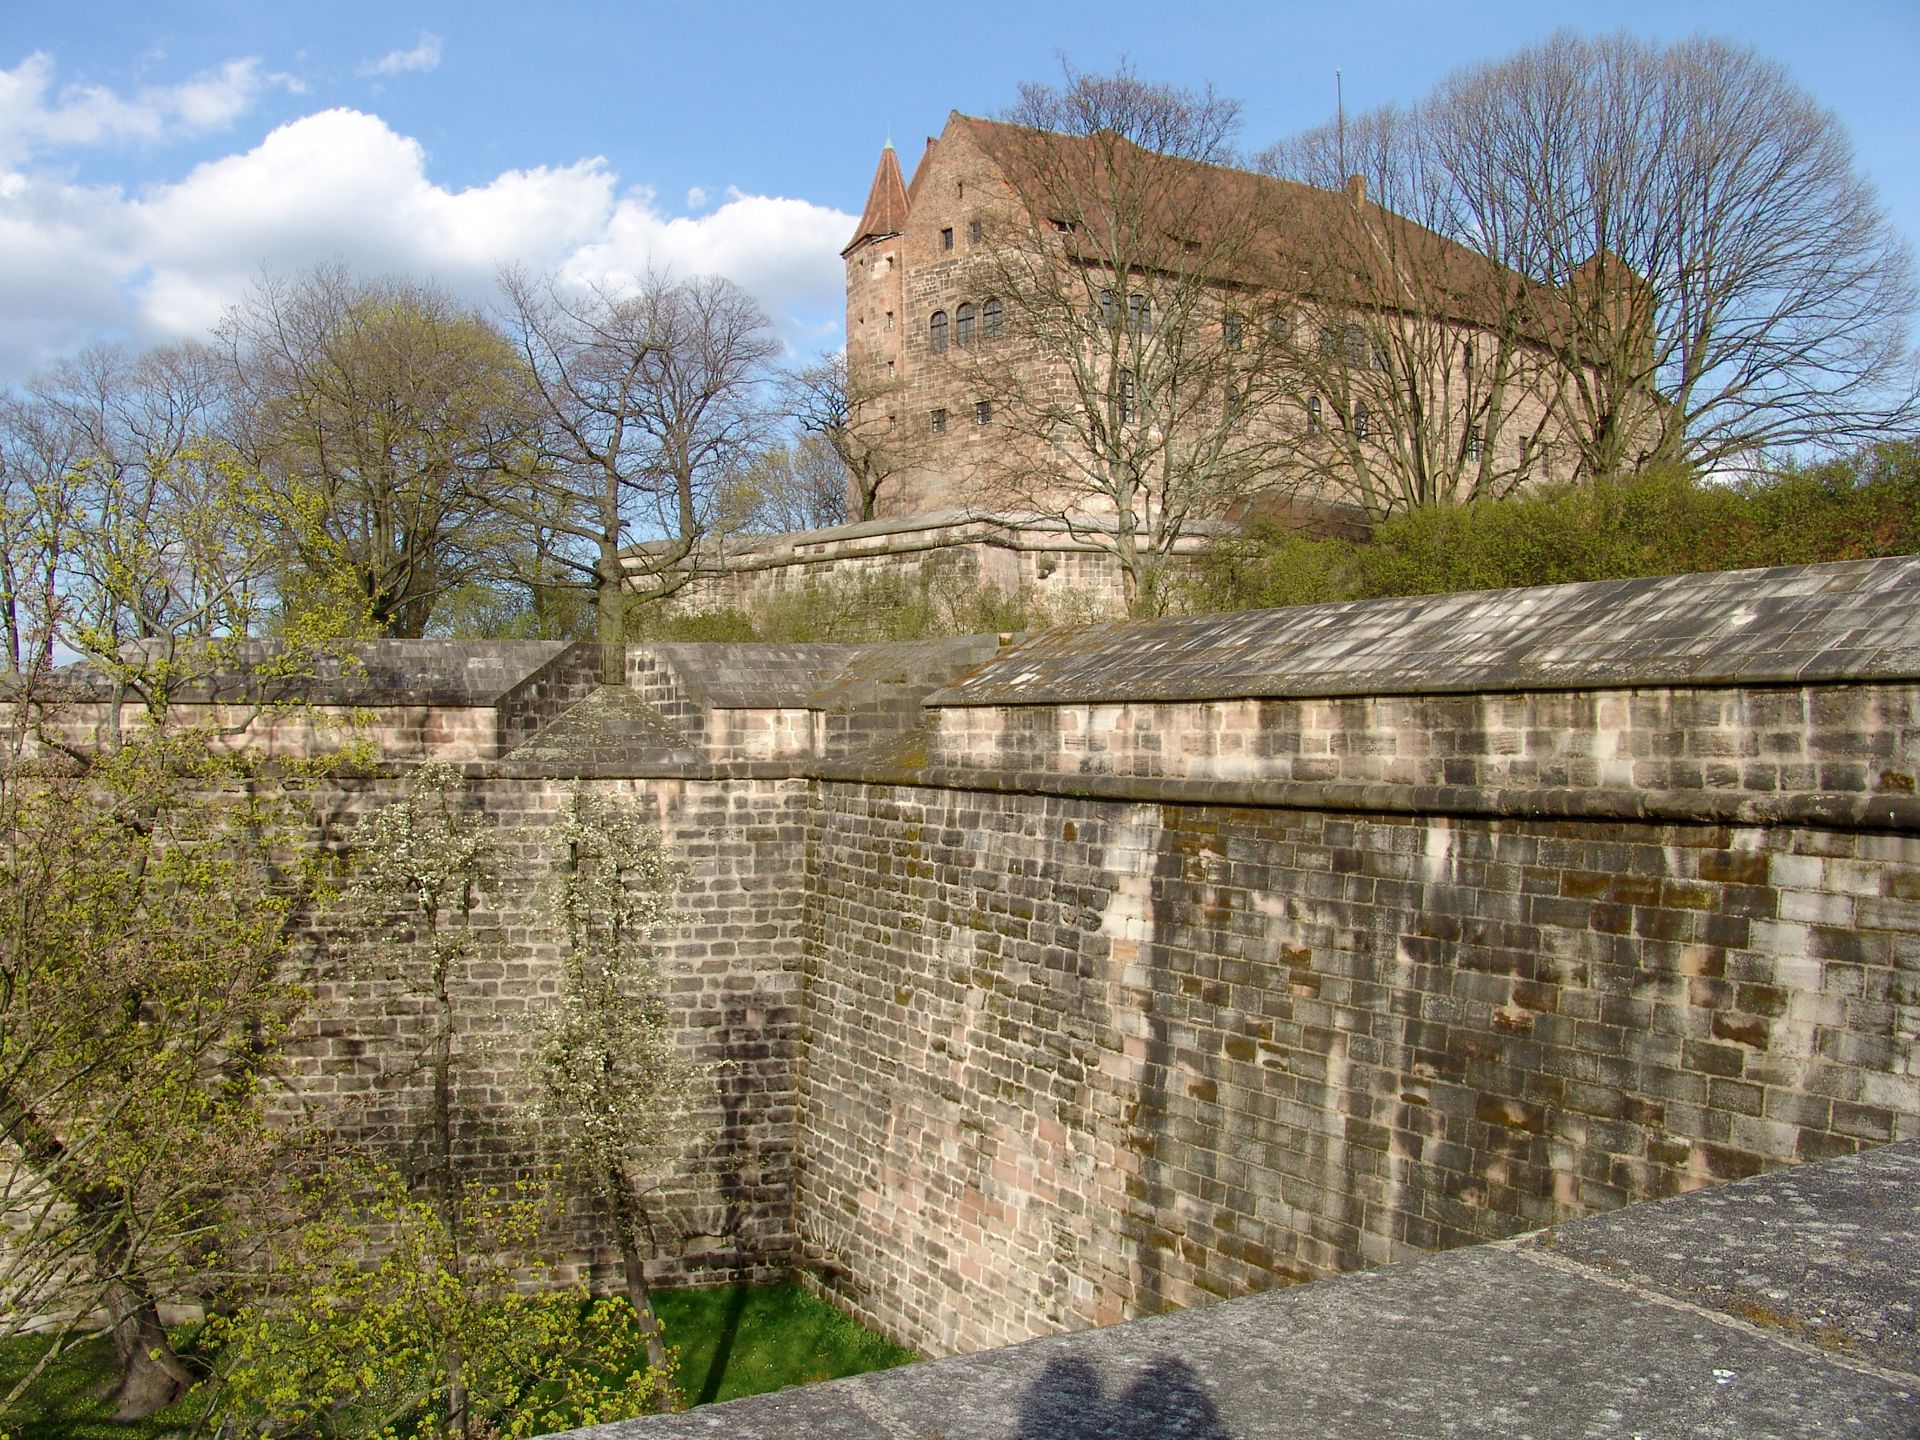 City Fortification Castle bastions as seen from Tiergärtnertor bastion